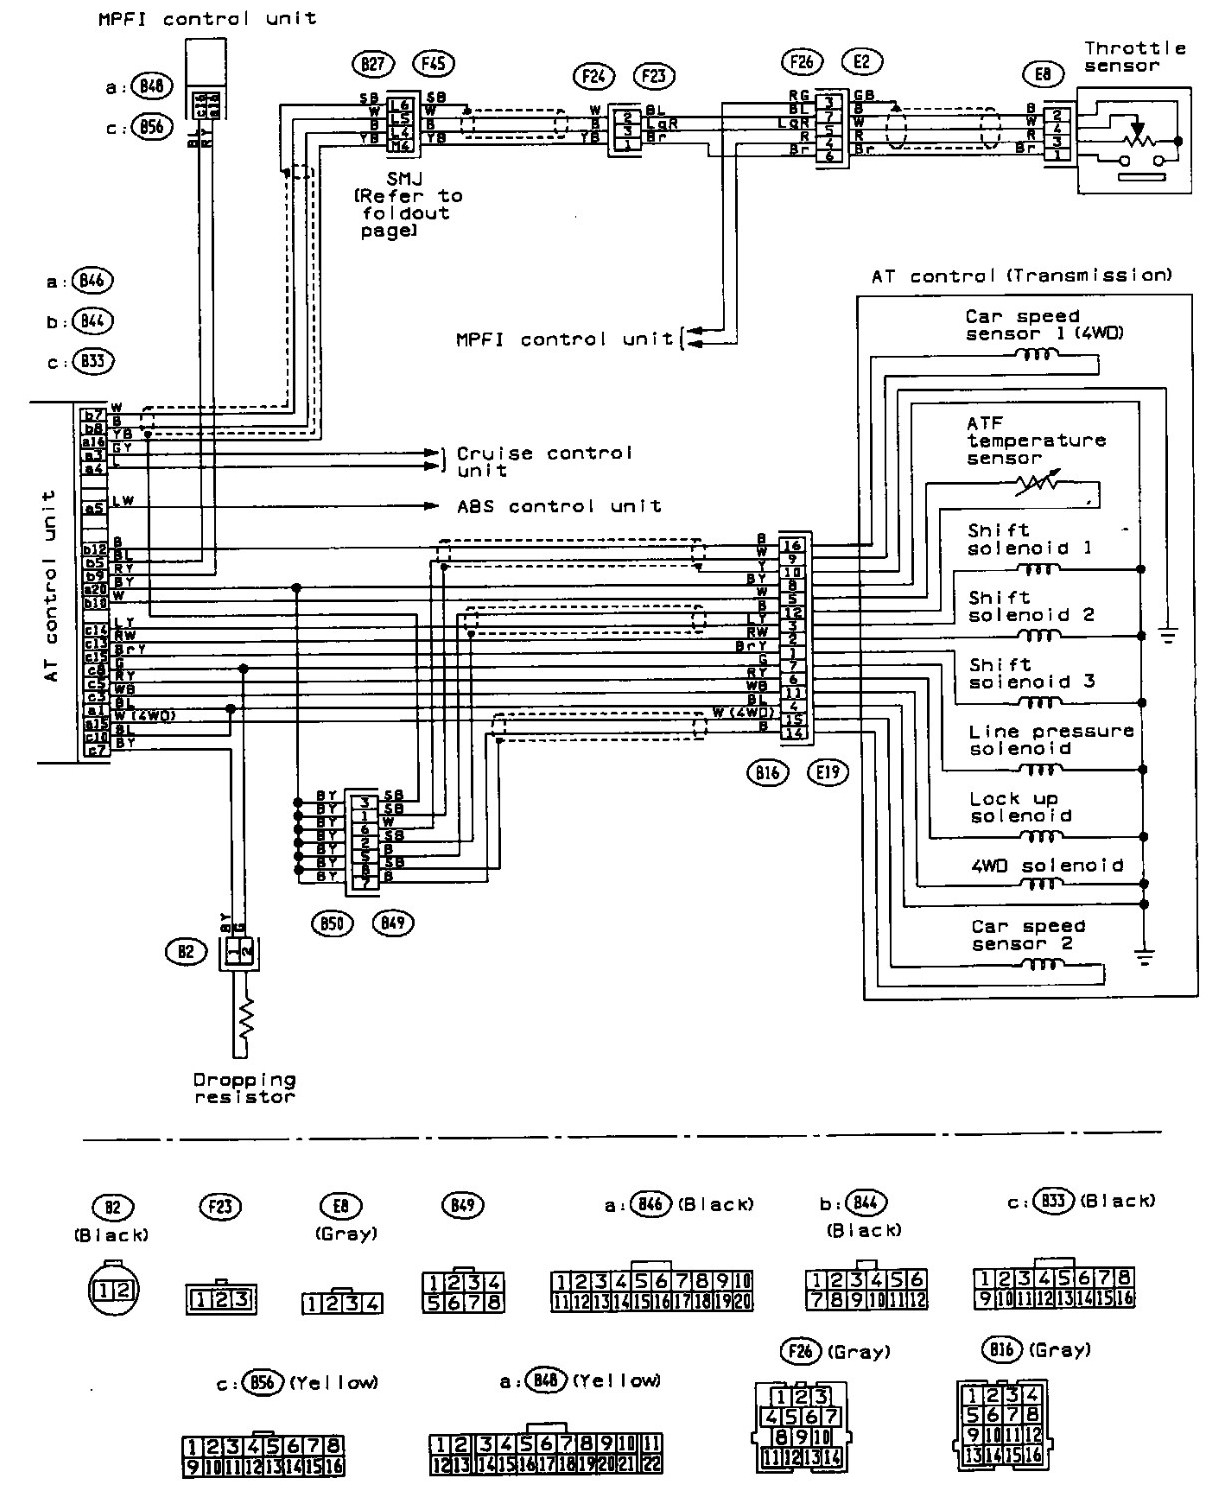 96 subaru legacy wiring diagram - wiring diagram gear-work-a -  gear-work-a.casatecla.it  casatecla.it